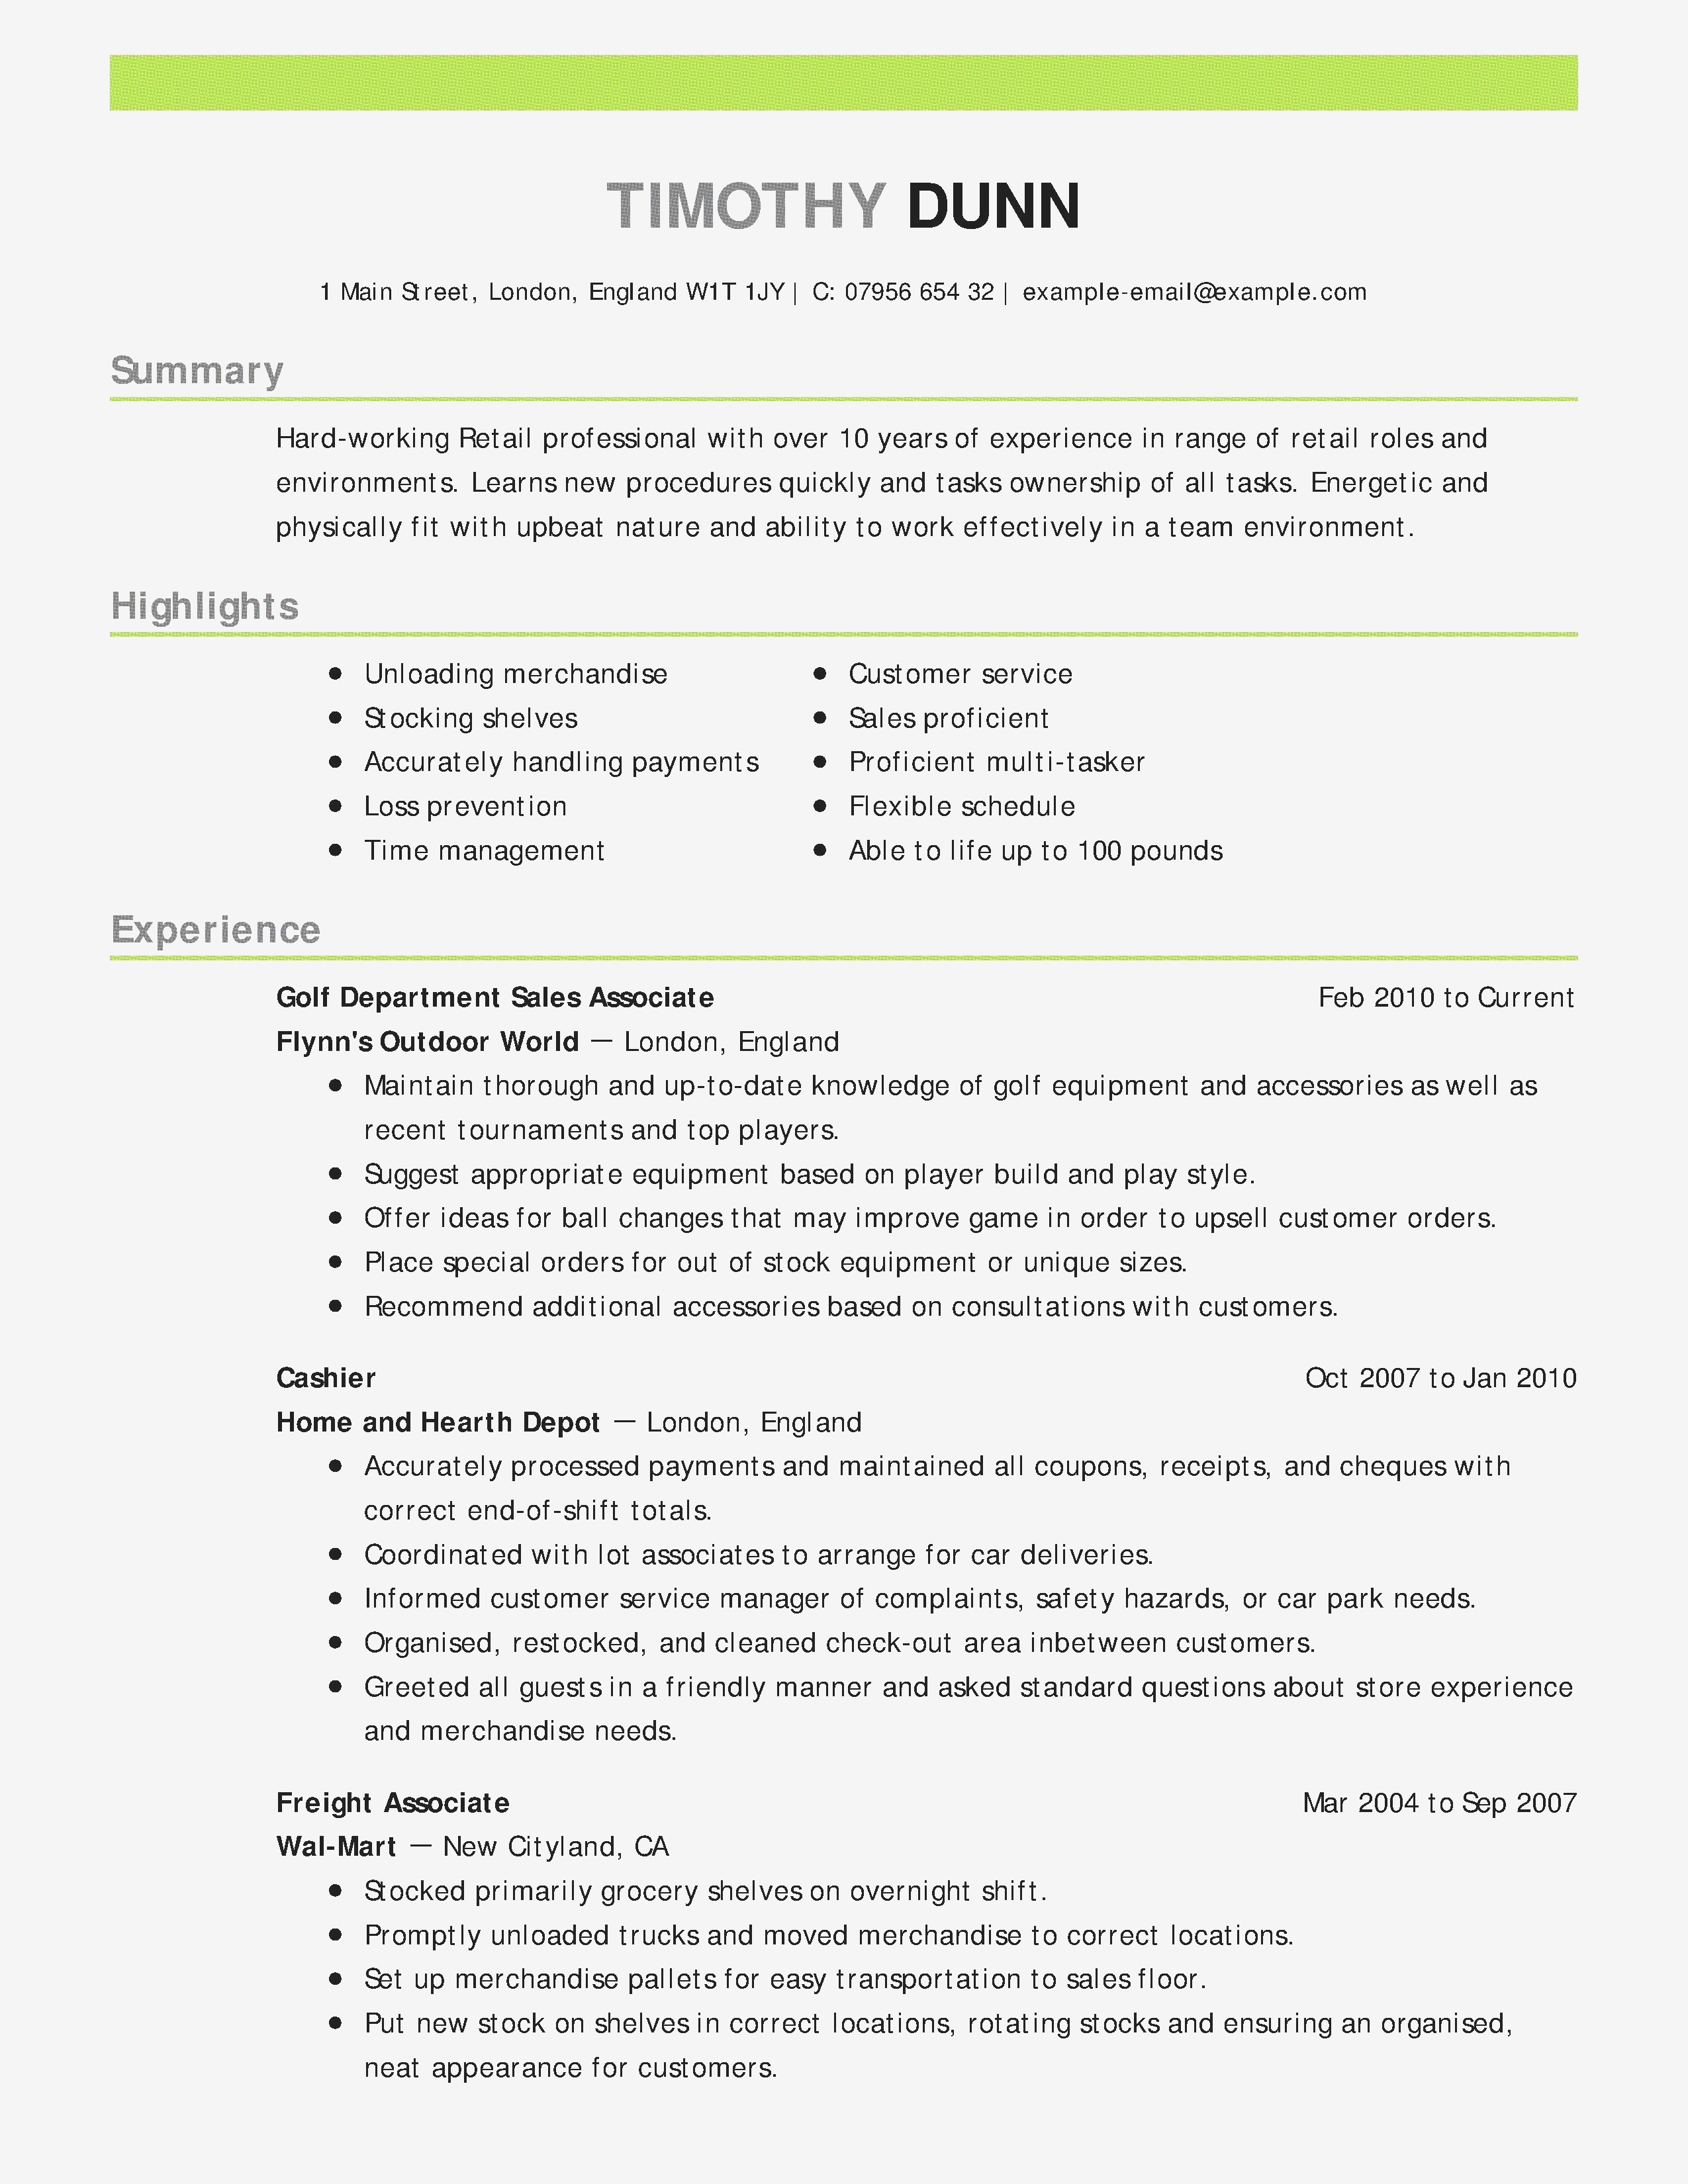 Sales Experience Resume - Sample Cover Letters for Sales